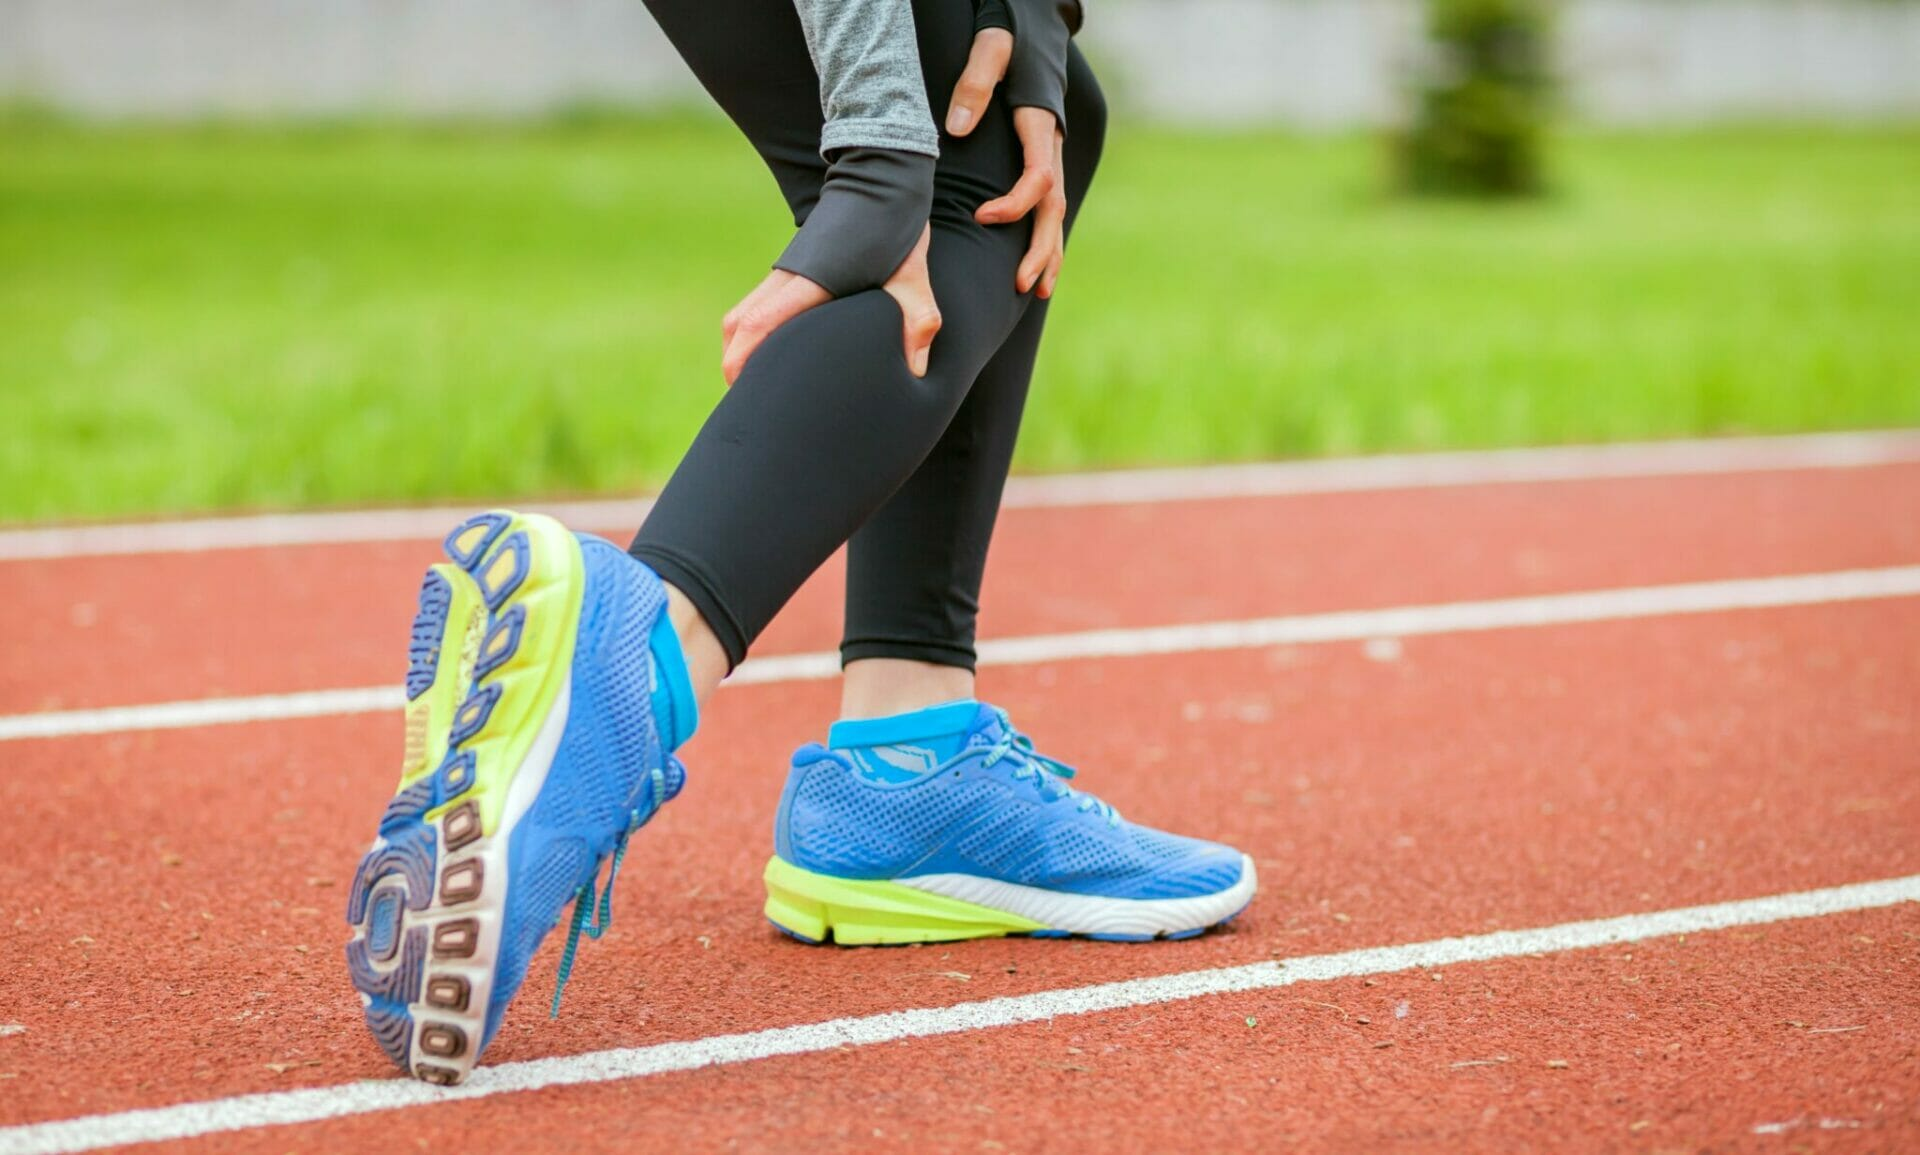 How do I get rid of a strained calf muscle?